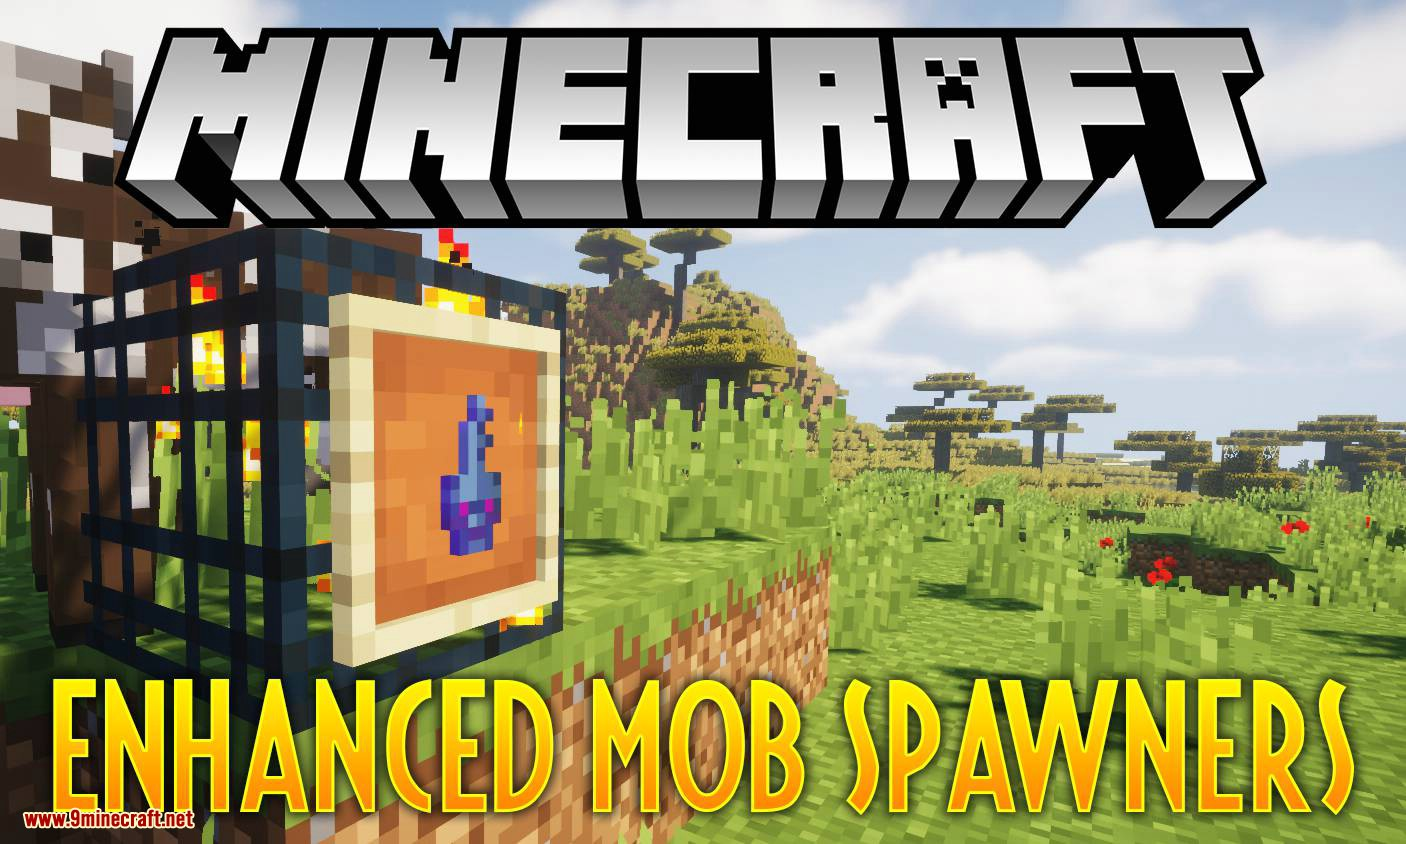 Enhanced Mob Spawners Mod 11212.112126.11212/11212.112125.12 (More Functionality to Mob